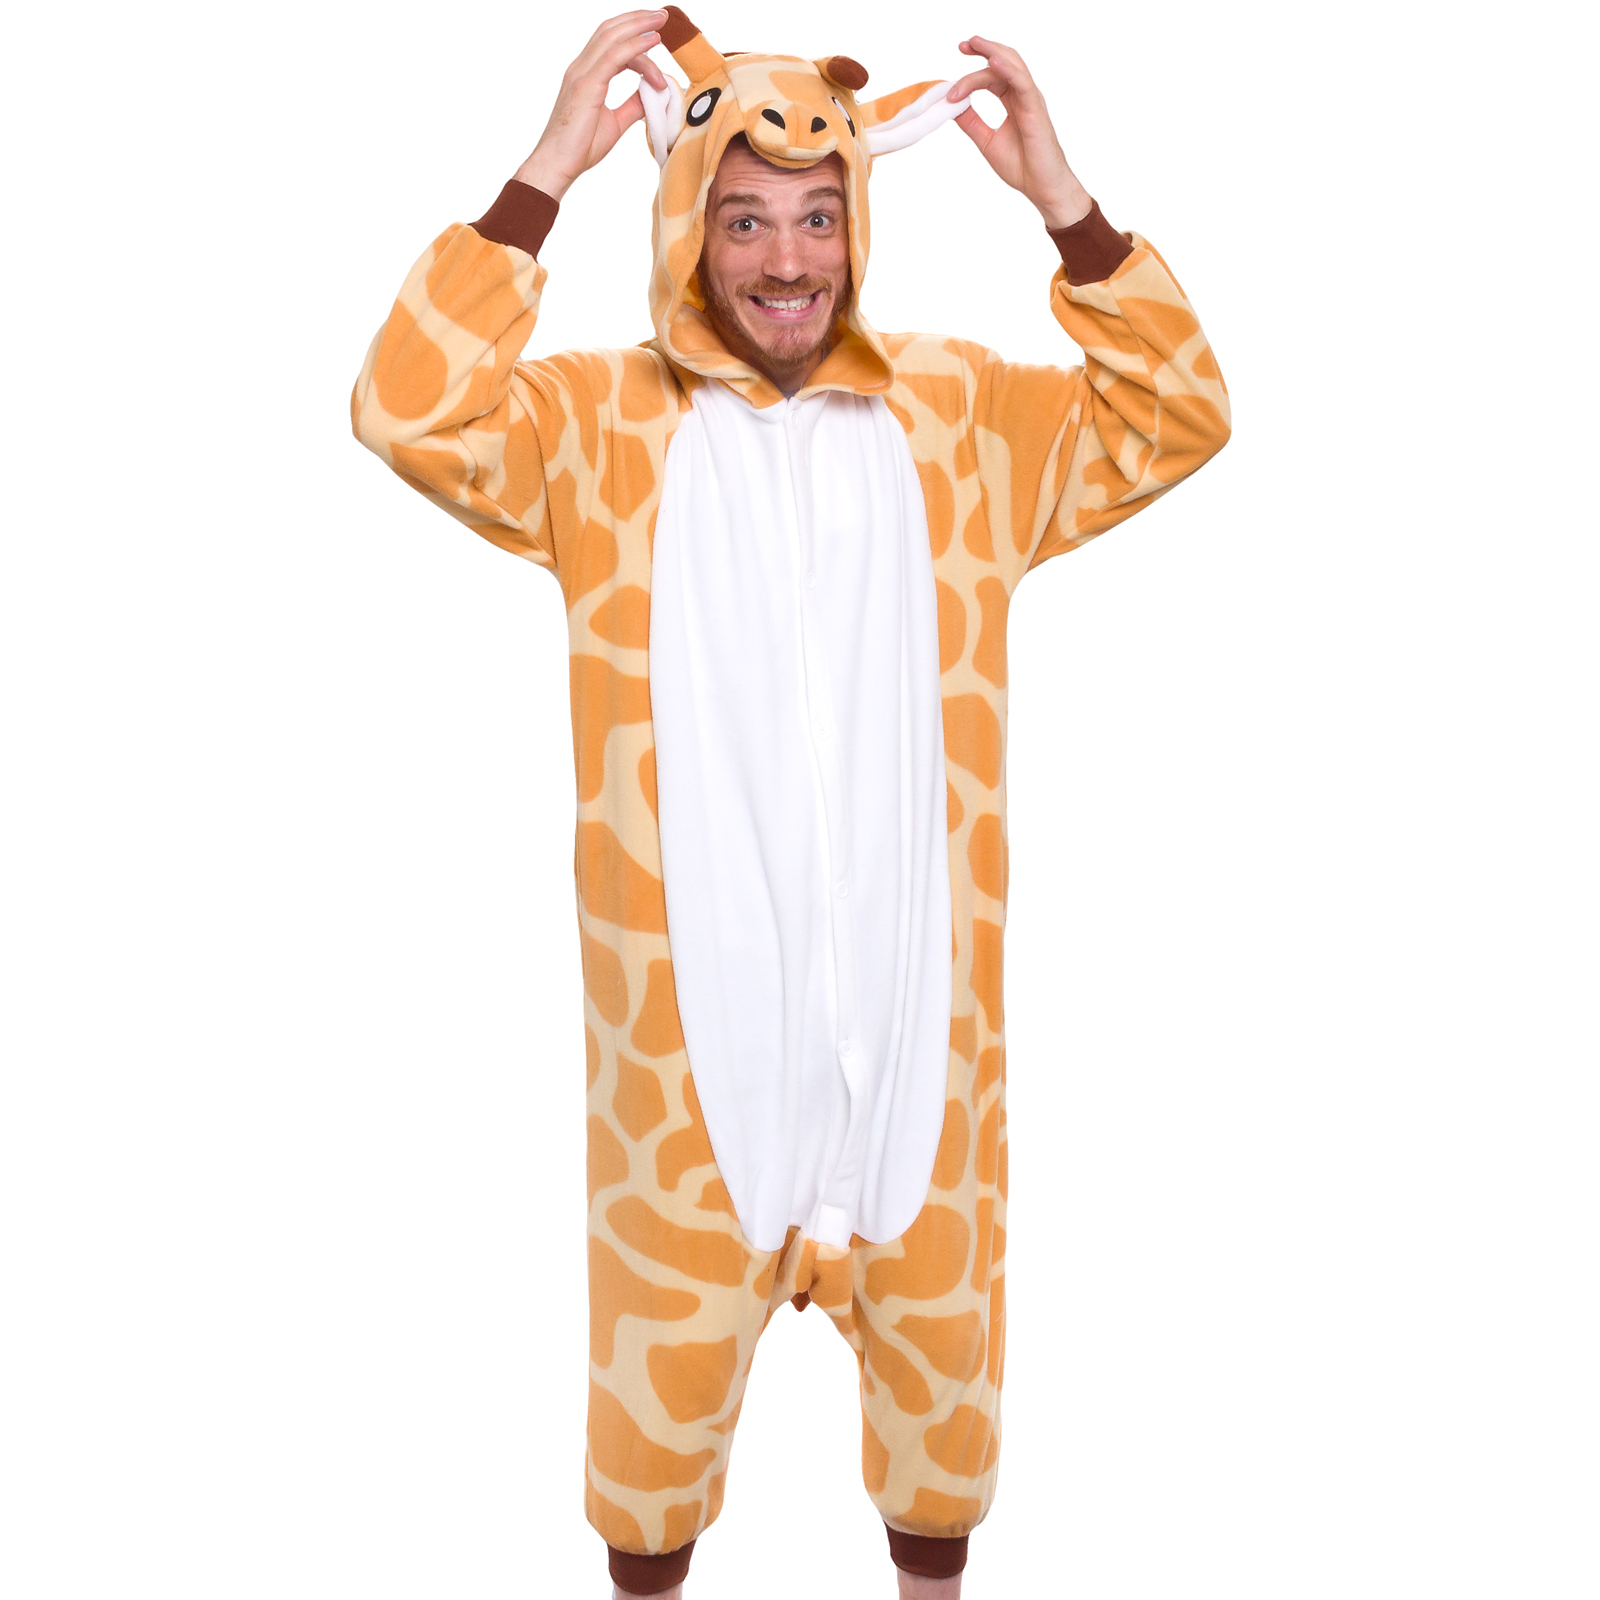 SILVER LILLY Unisex Adult Plush Animal Cosplay Costume Pajamas (Giraffe)